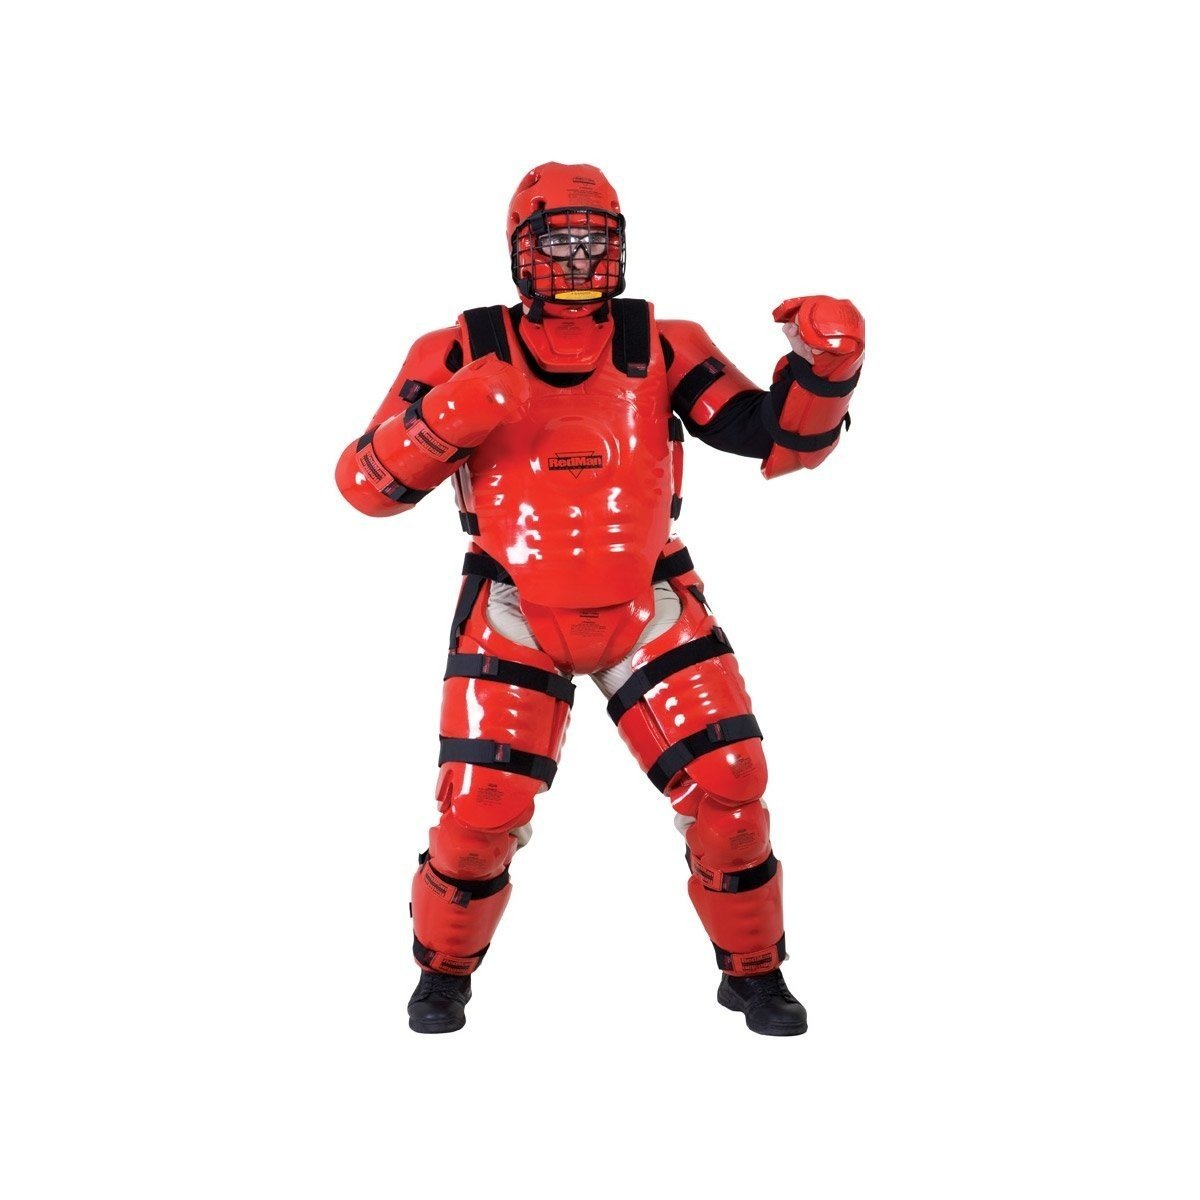 INSTRUCTOR XP SUIT REDMAN